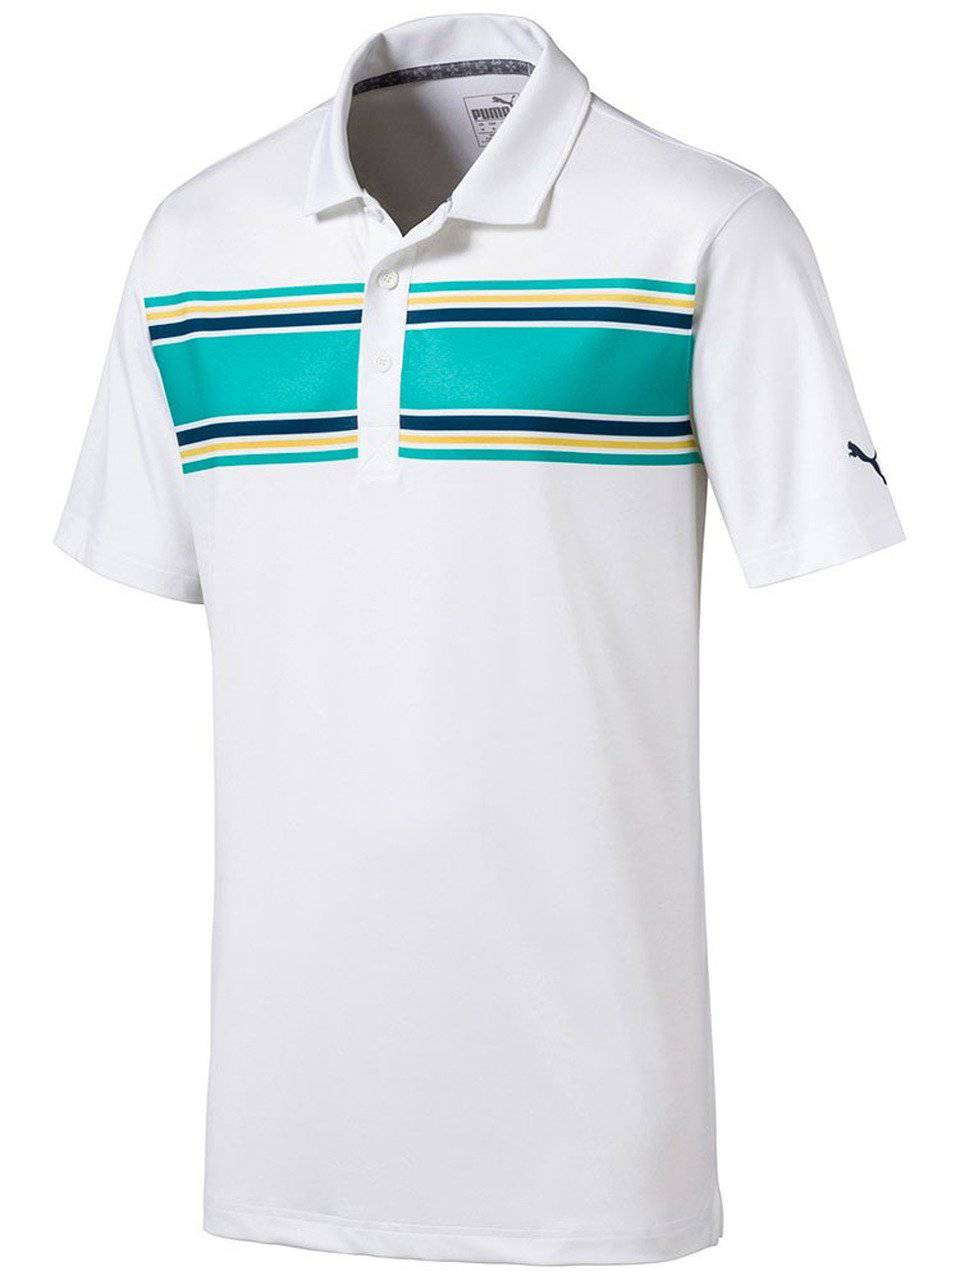 Montauk Blue POLO SHIRT - Allsport